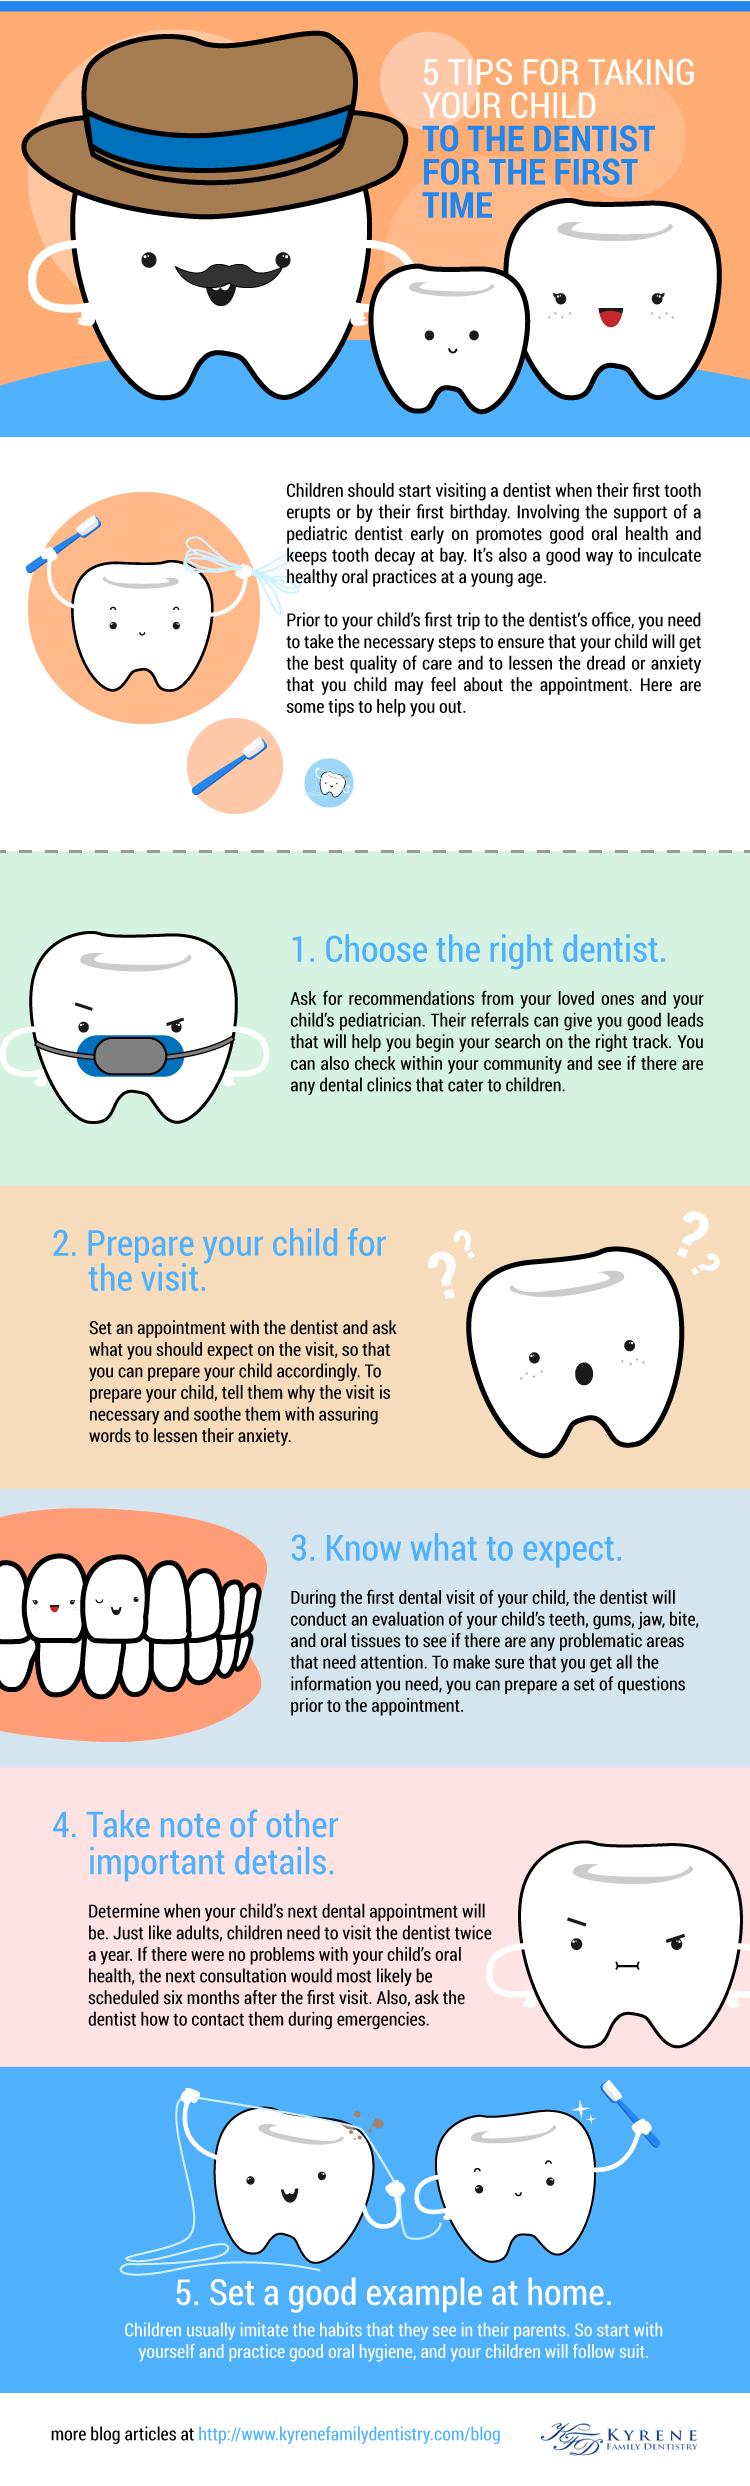 5 Tips for Taking your Child to the Dentist for the First ...